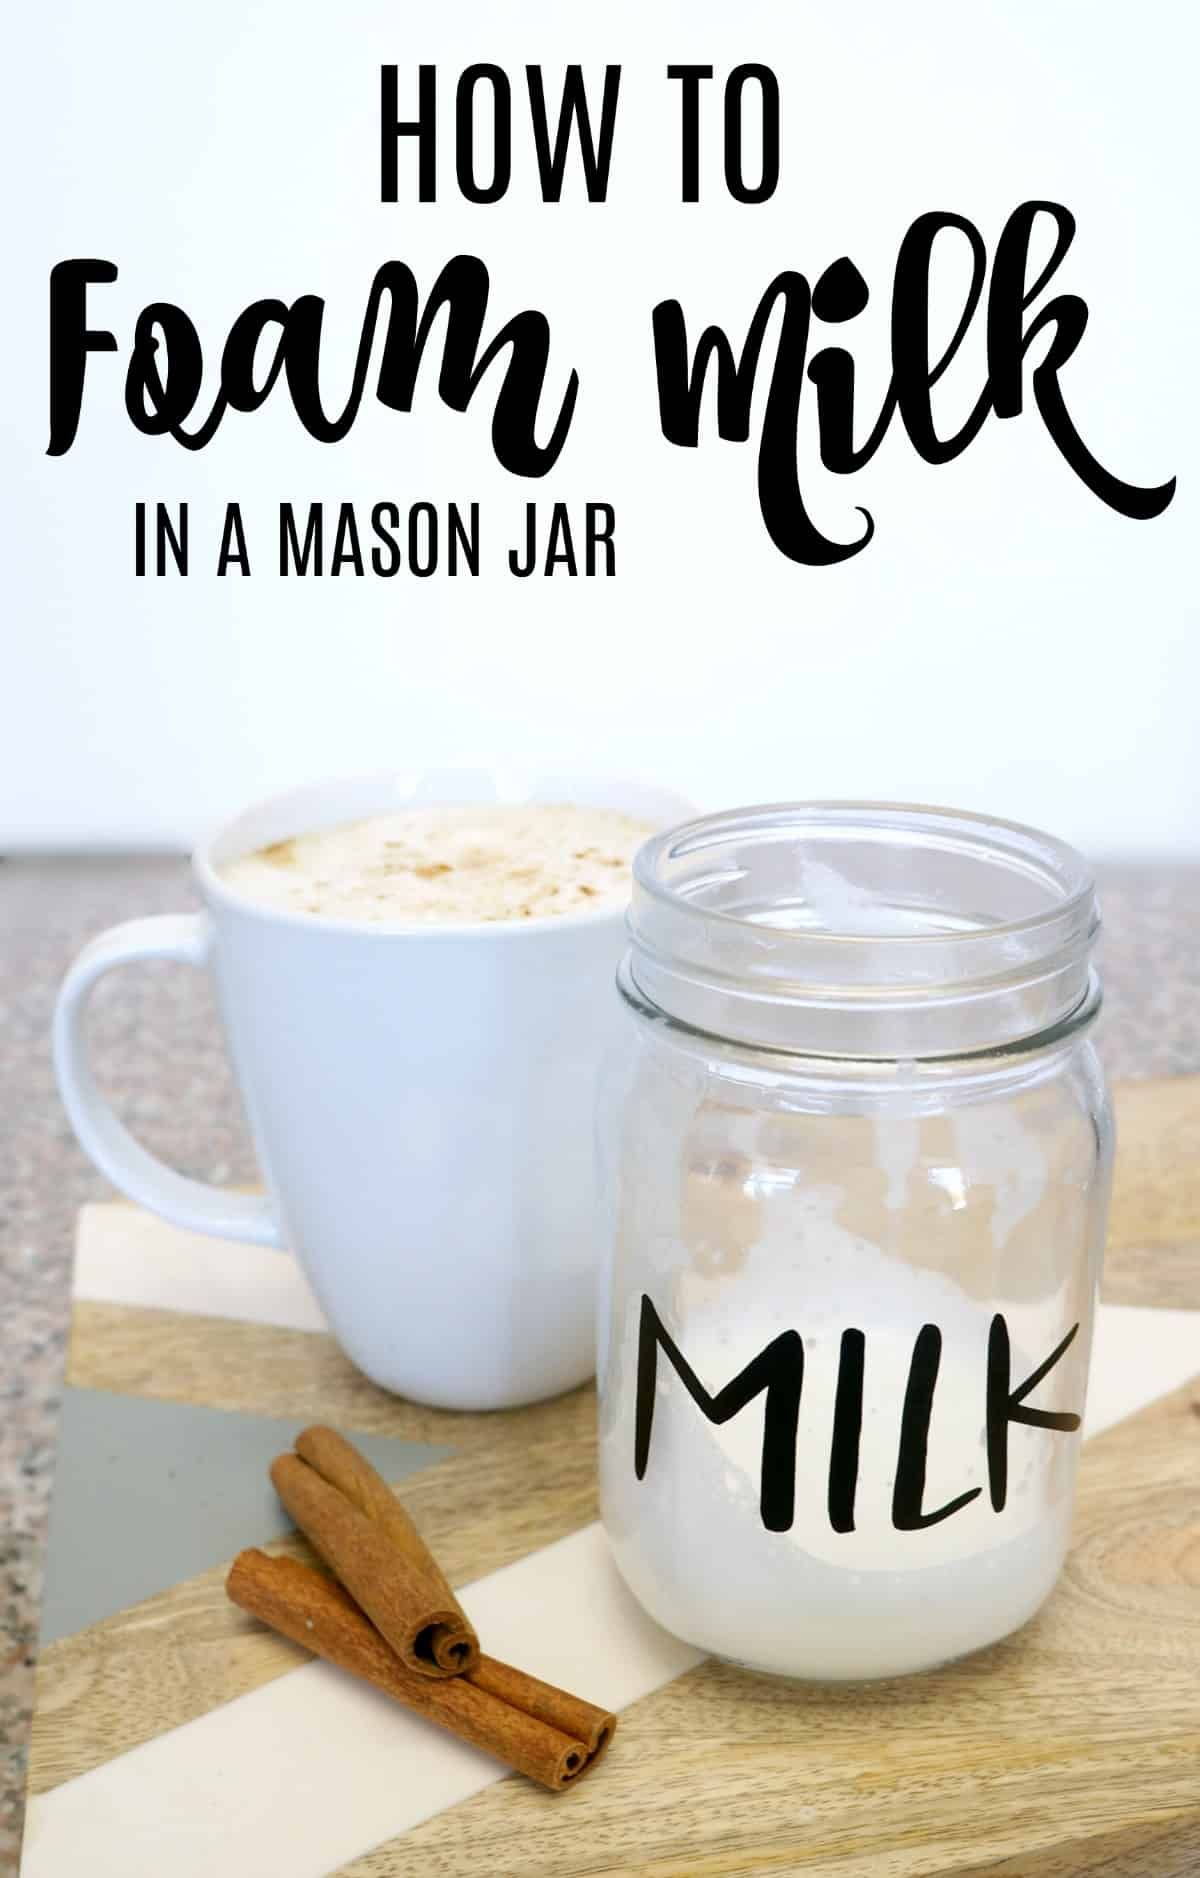 How to foam milk in a mason jar Steamed milk at home